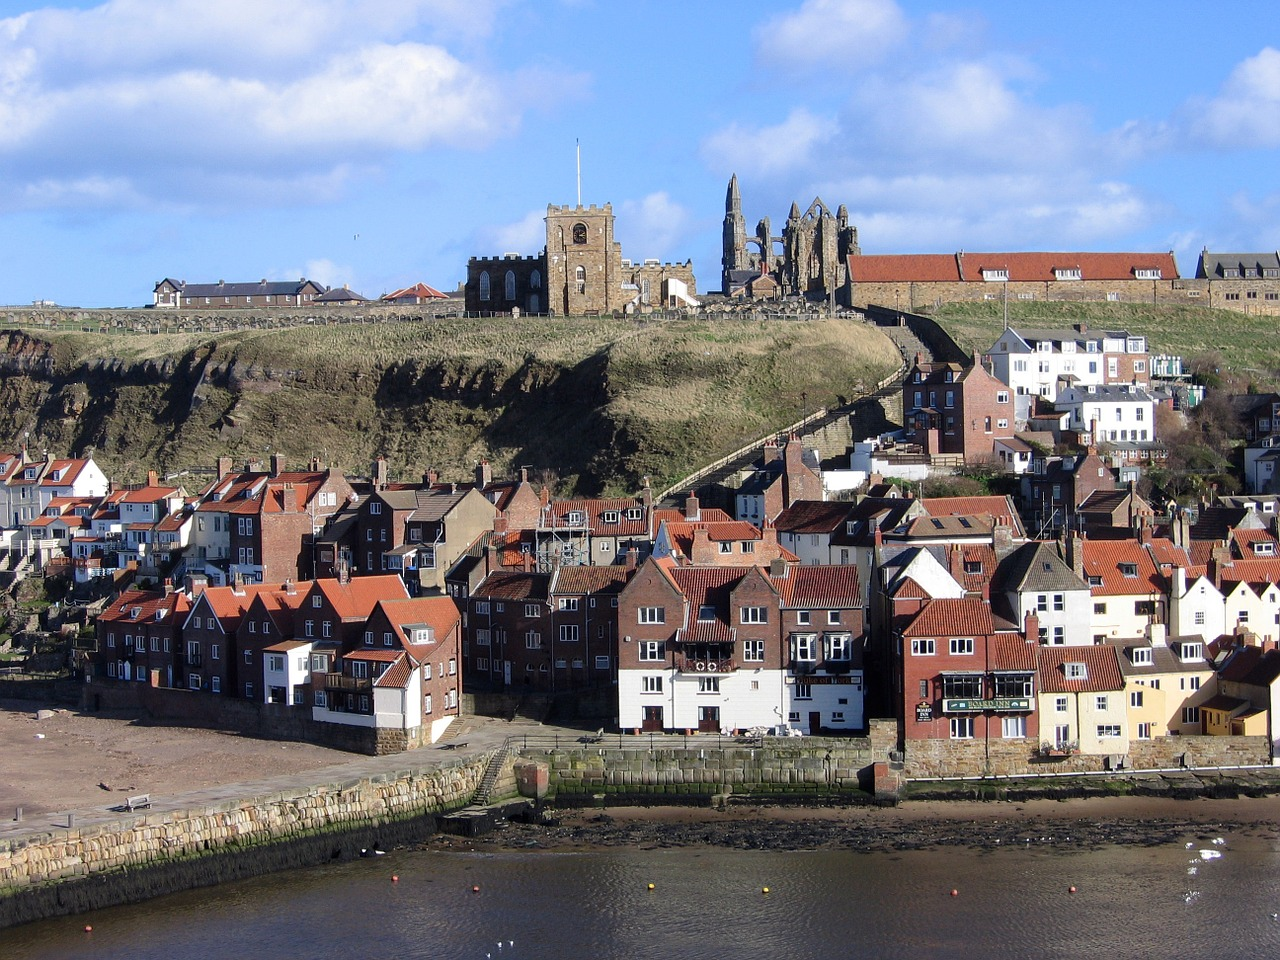 Whitby Abbey by Postbyte on Pixabay